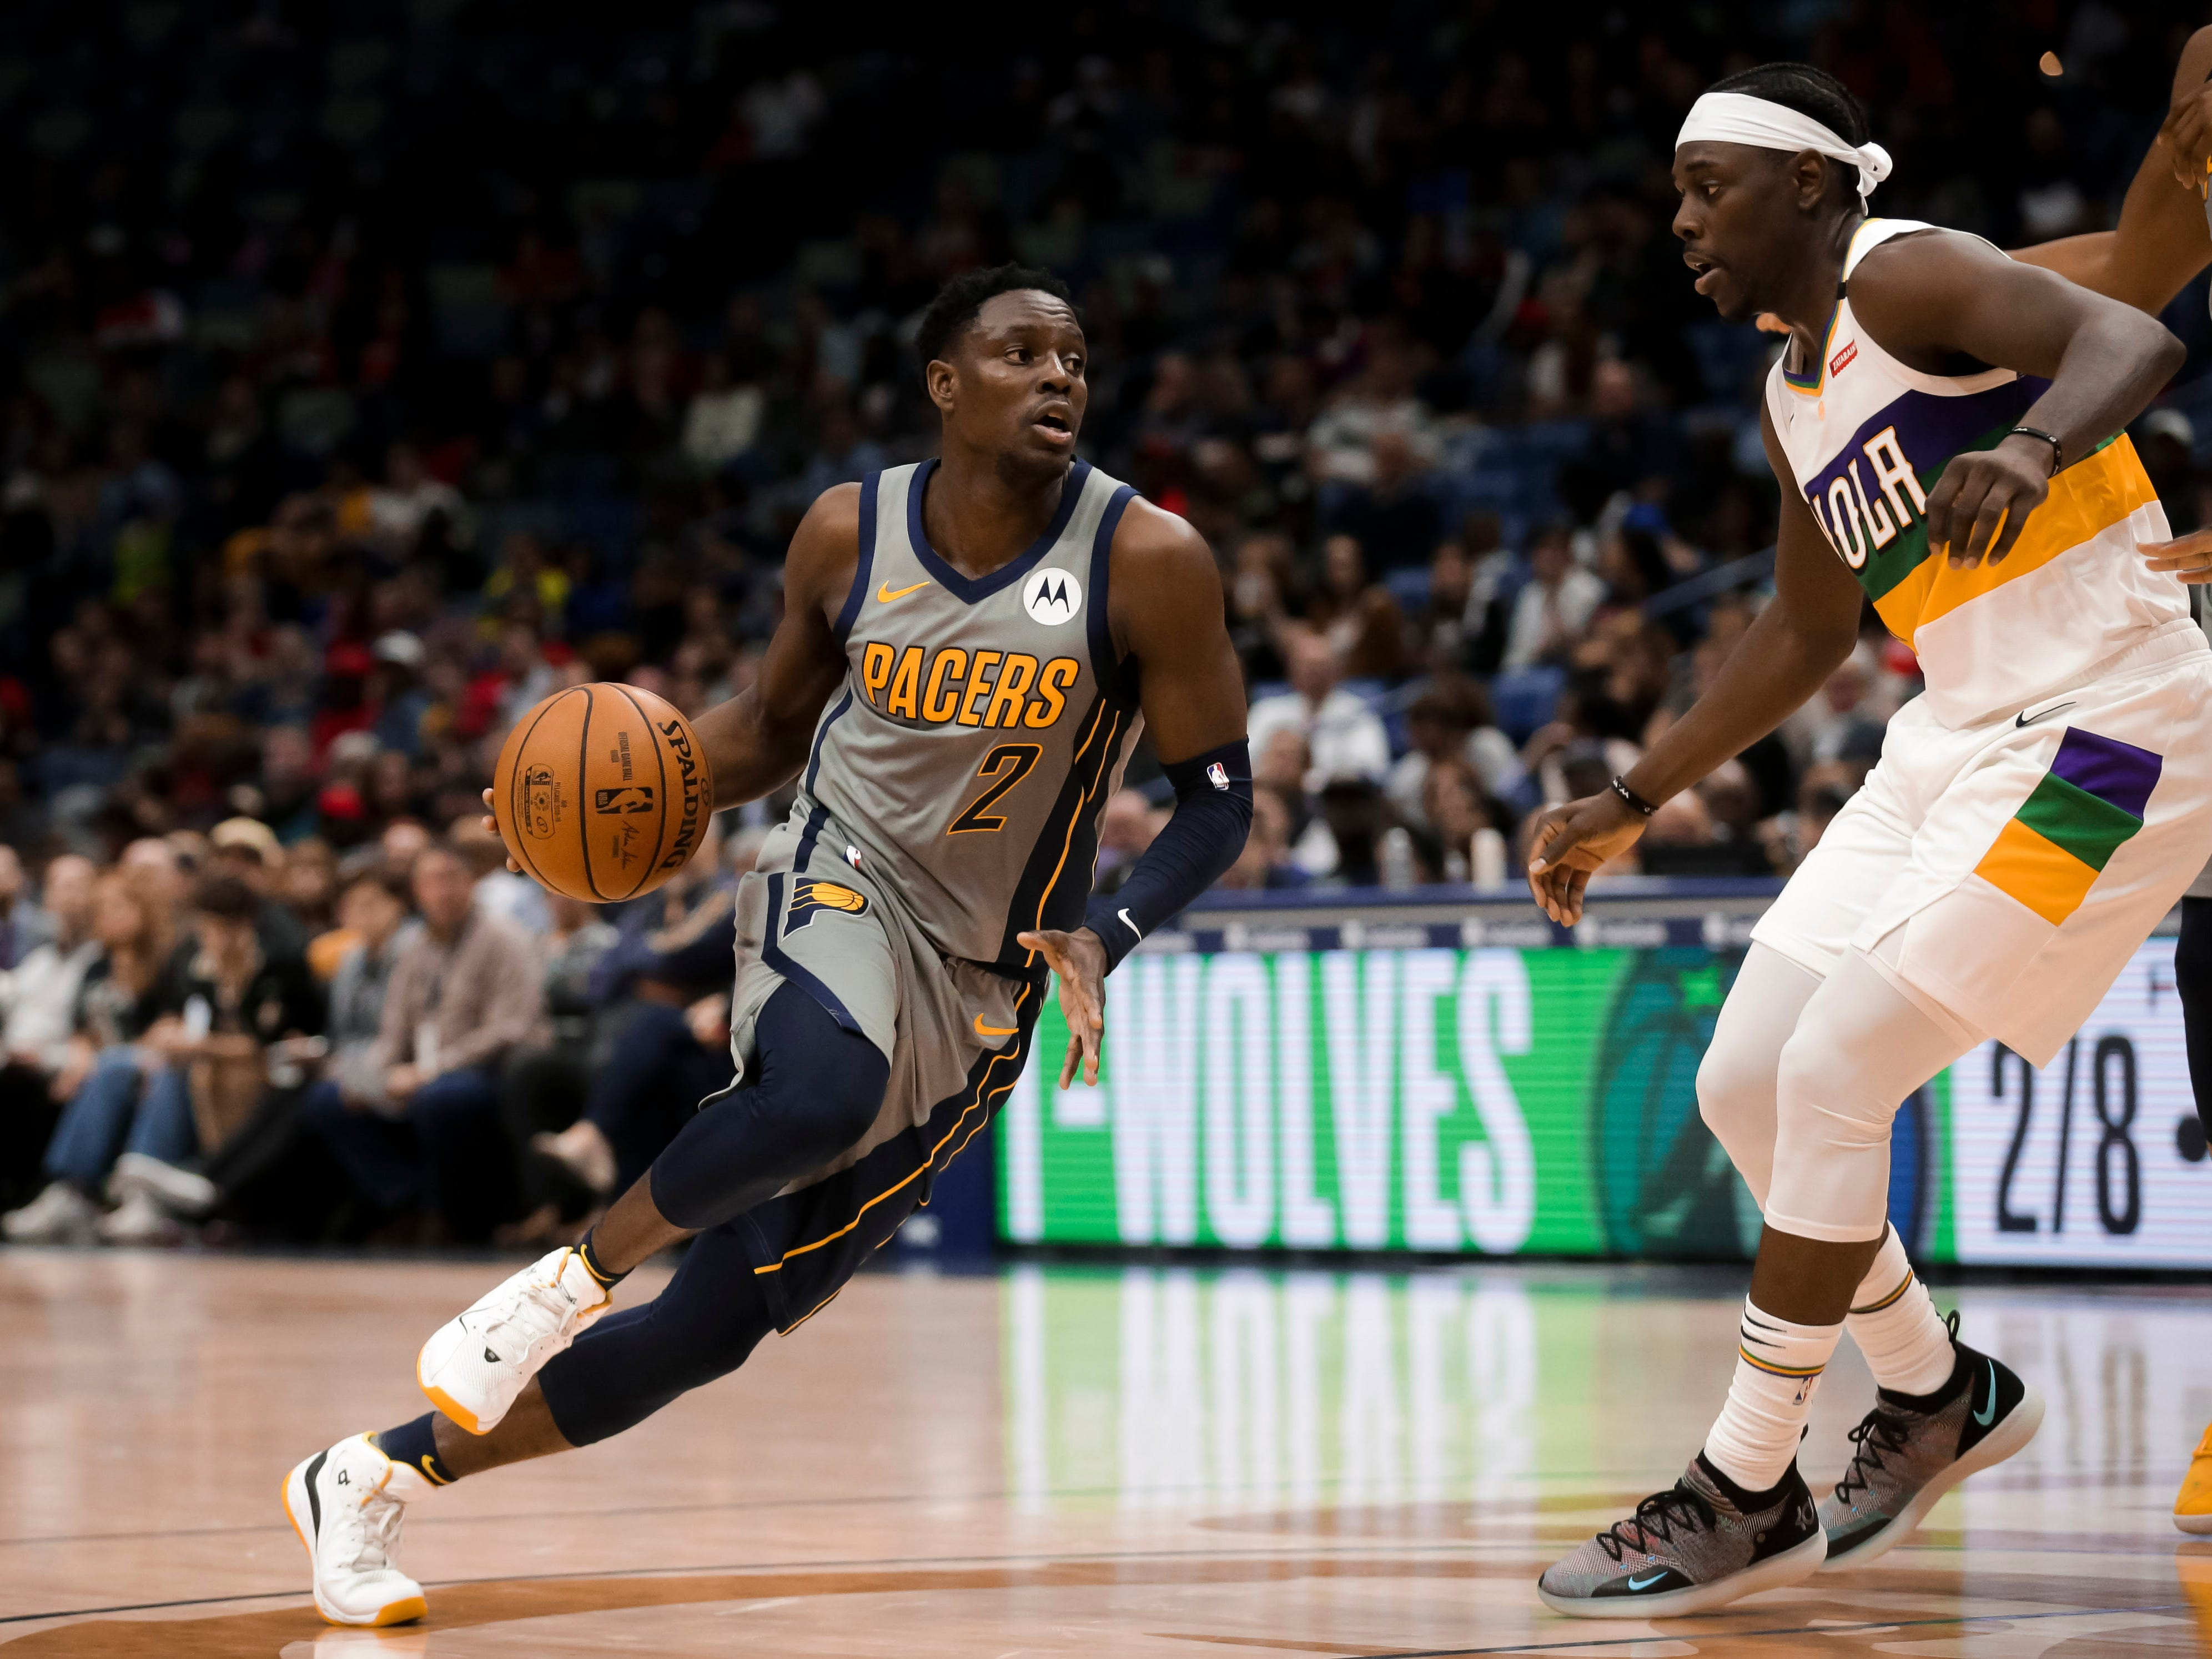 Feb 4, 2019; New Orleans, LA, USA; Indiana Pacers guard Darren Collison (2) drives in against New Orleans Pelicans guard Jrue Holiday (11) during the second quarter at the Smoothie King Center.